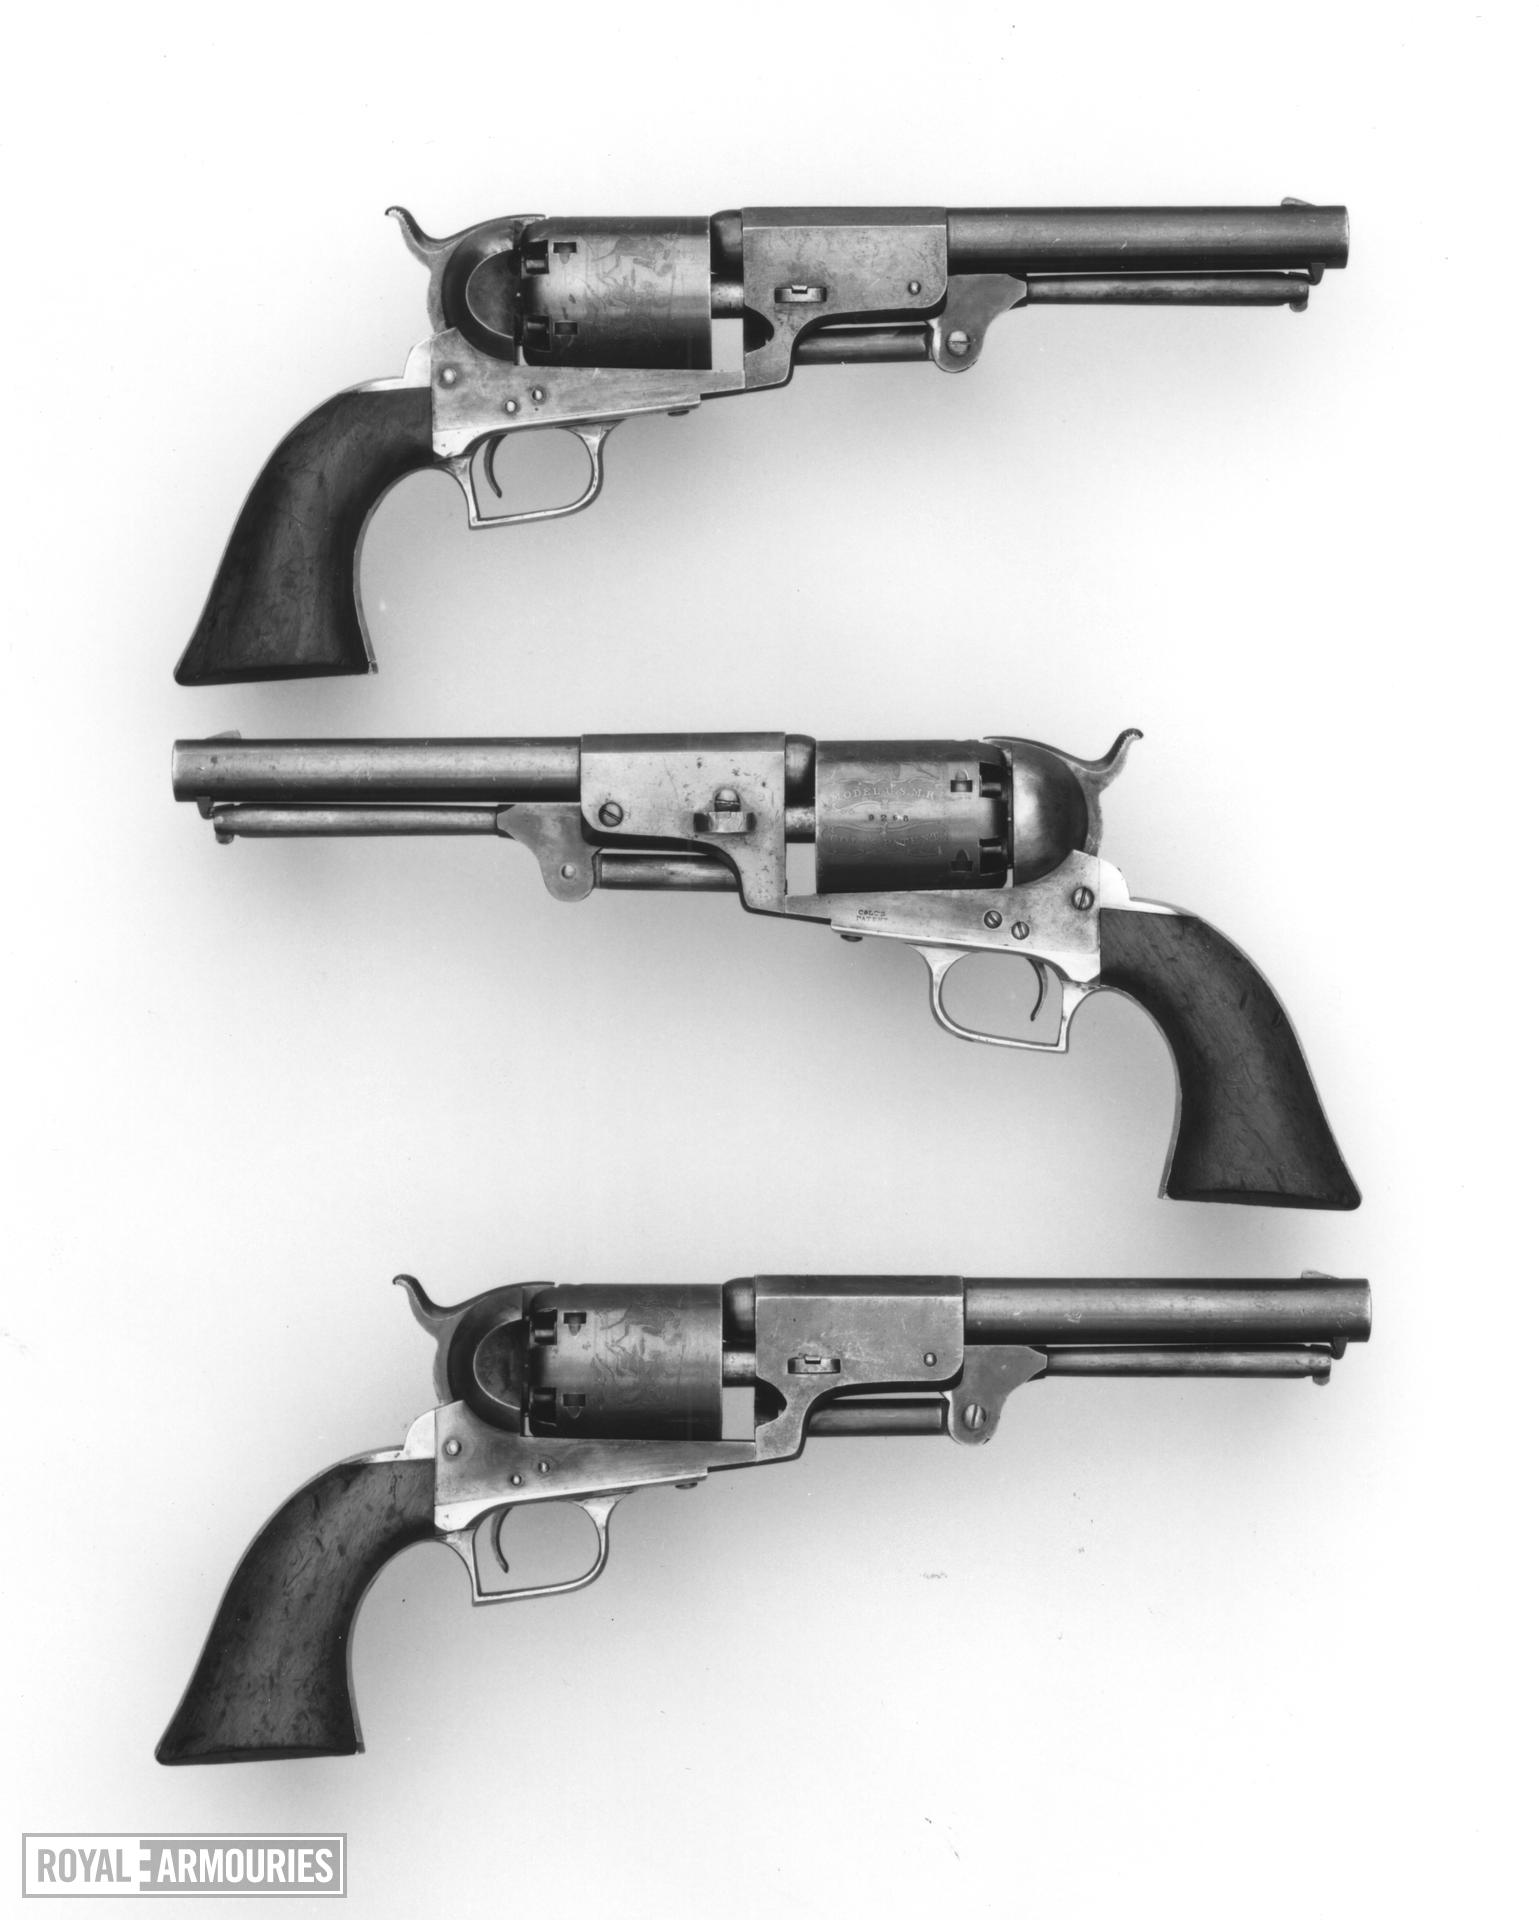 Percussion six-shot revolver - Colt Dragoon, 2nd Model Pattern 1850